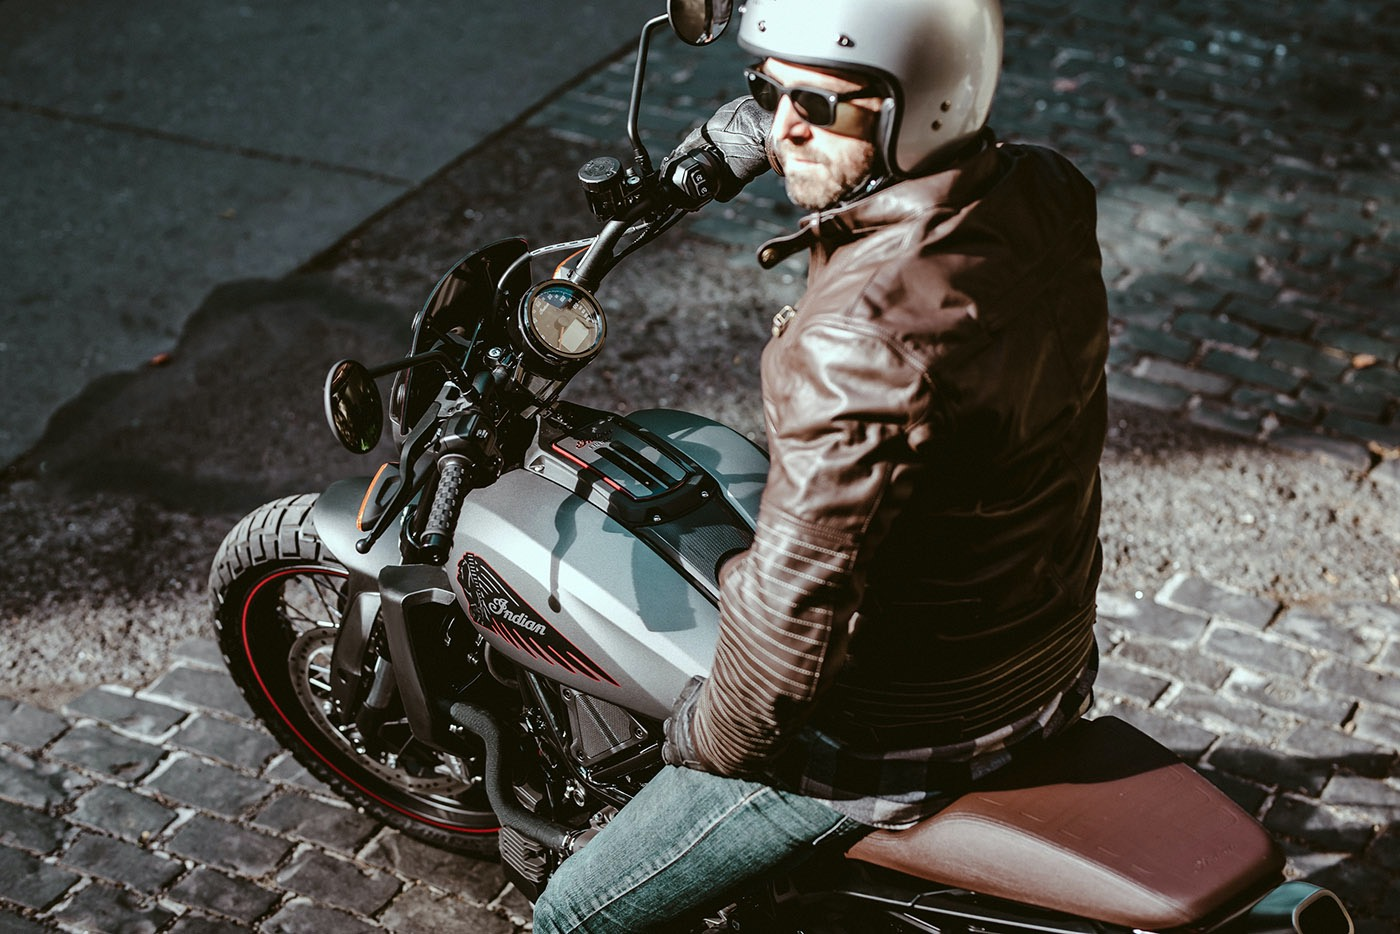 Indian Motorcycle FTR Rally Rider With Open Face Helmet